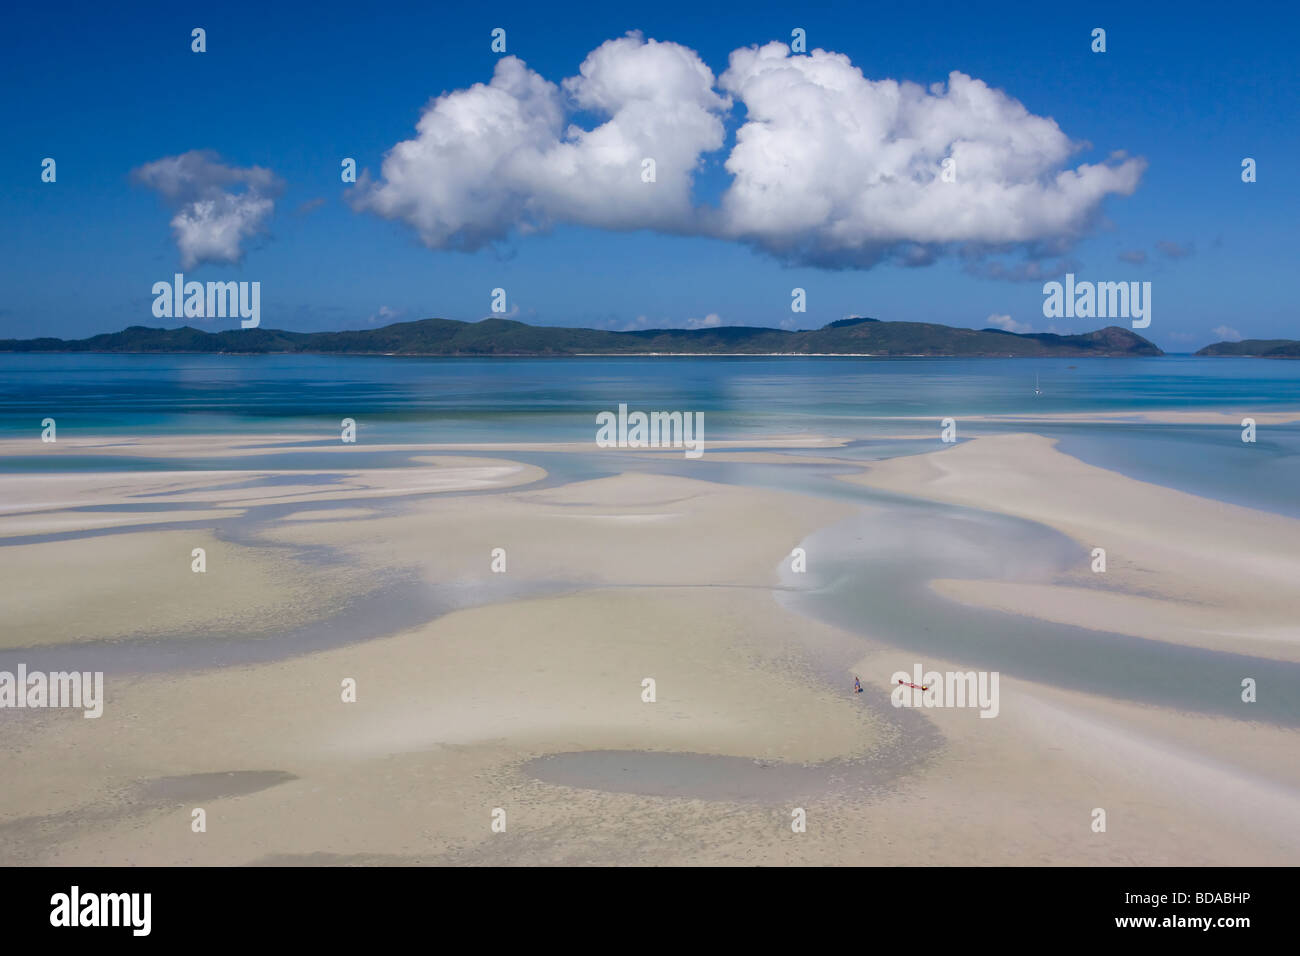 Whitsunday Island Whitehaven beach - Stock Image